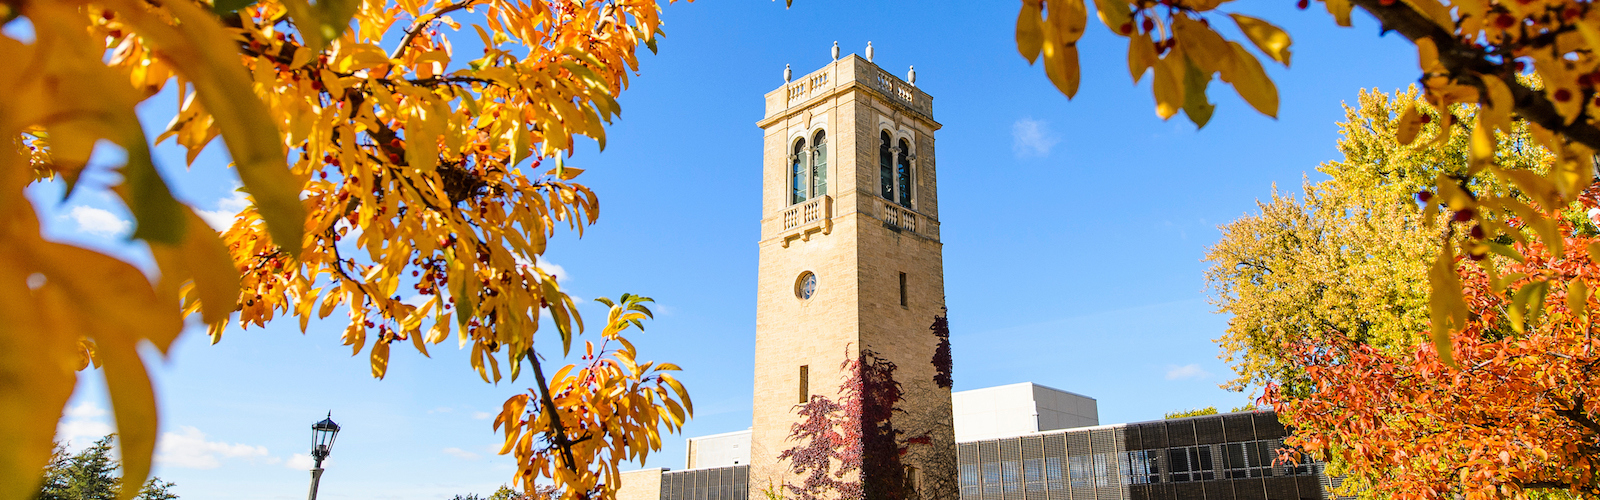 Carillon Tower and the Sewell Social Sciences Building during autumn